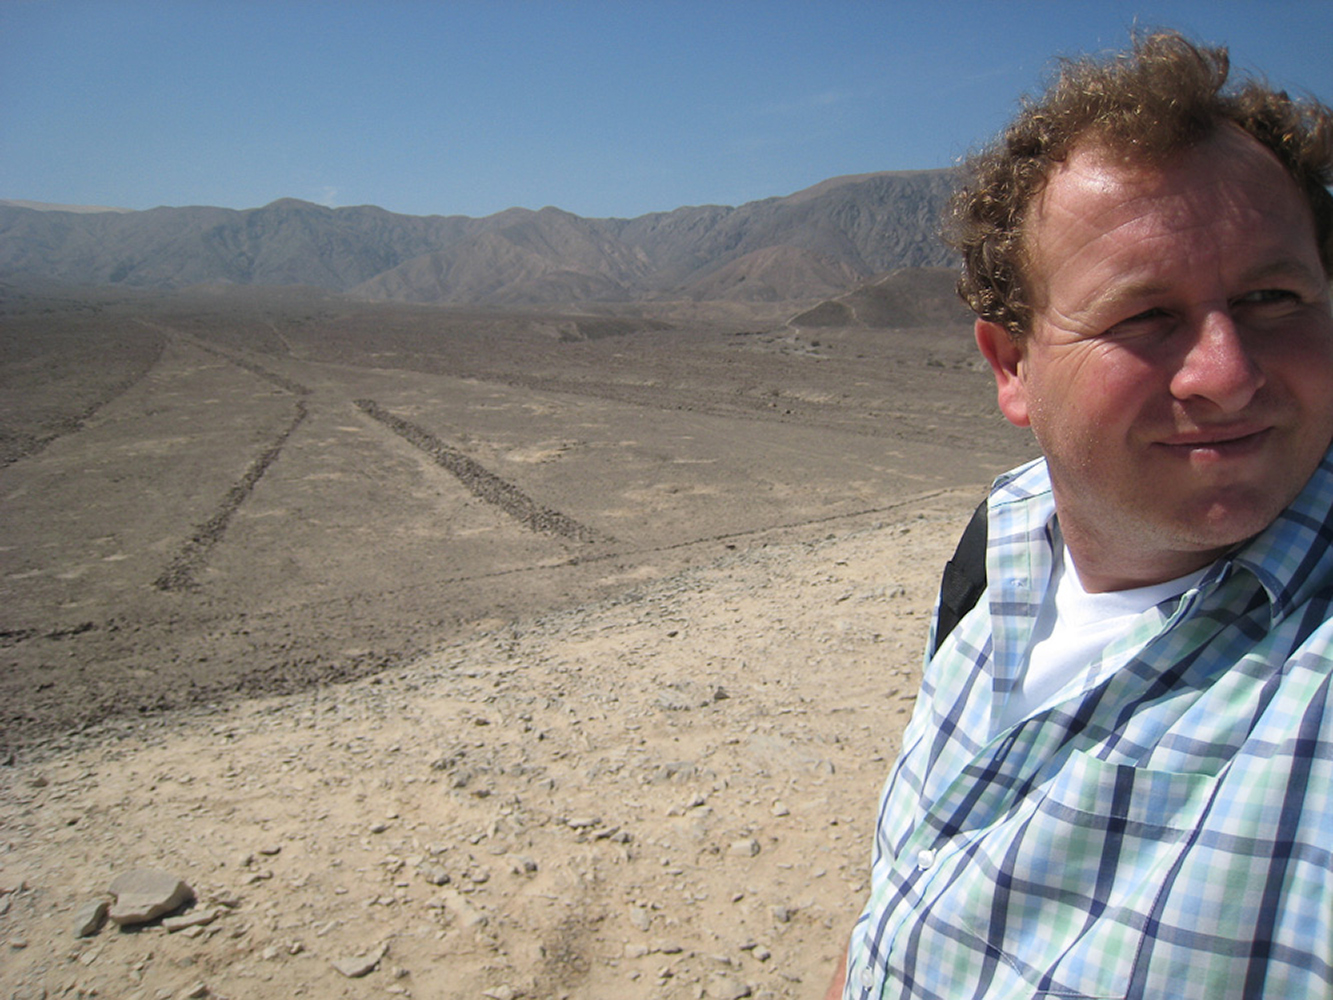 Nazca, Peru. Alien landing site at the mysterious Nazca lines